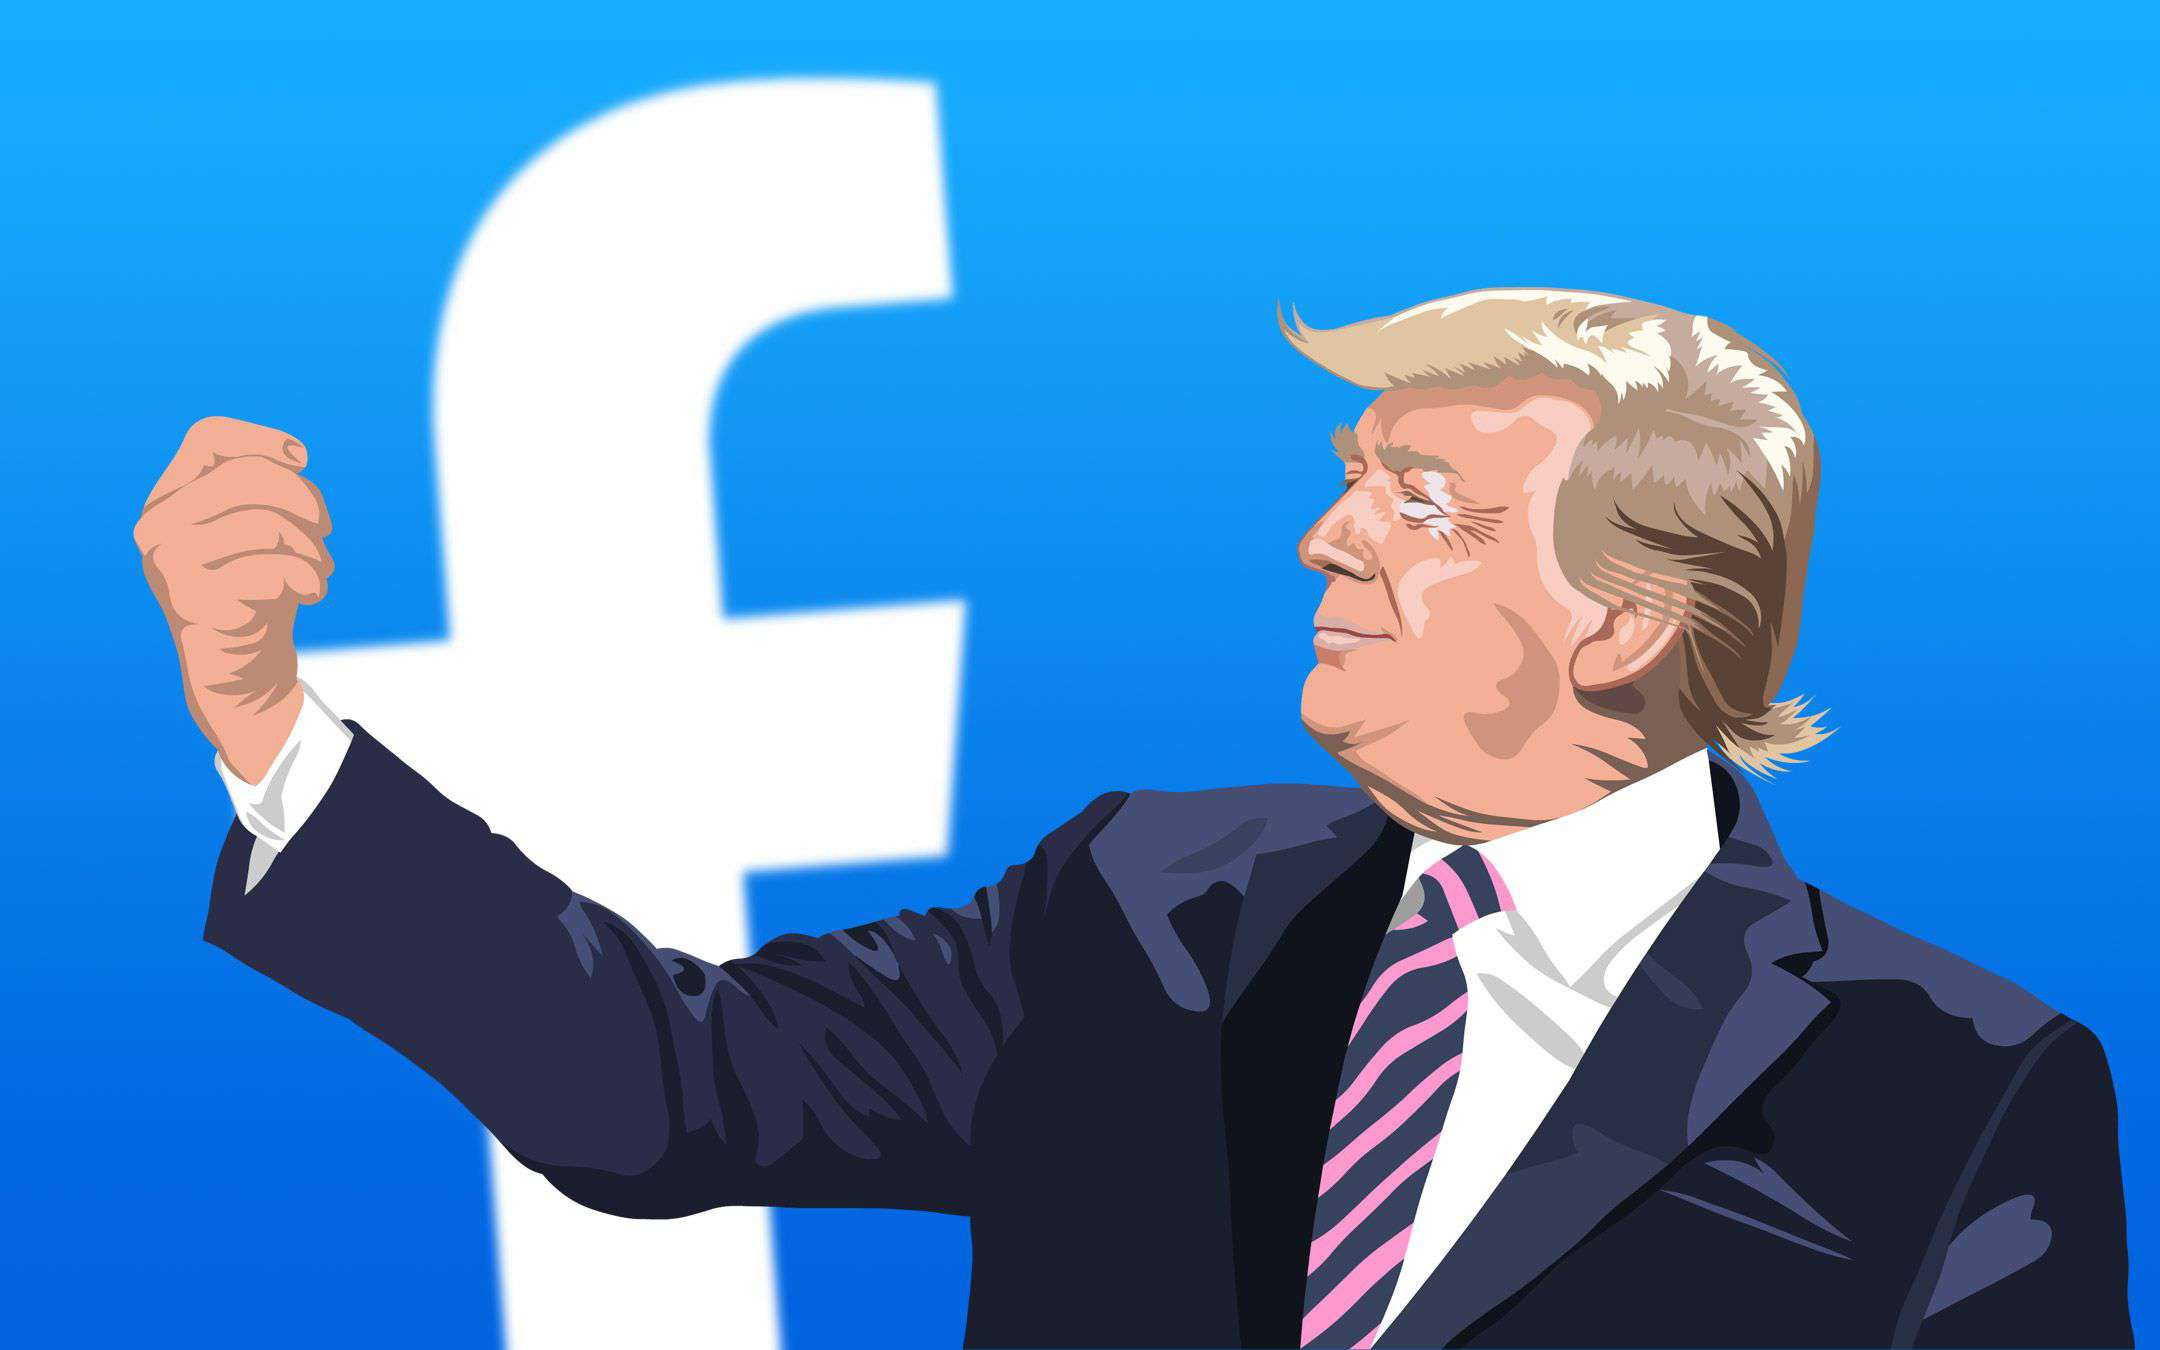 Facebook: the right has more engagement